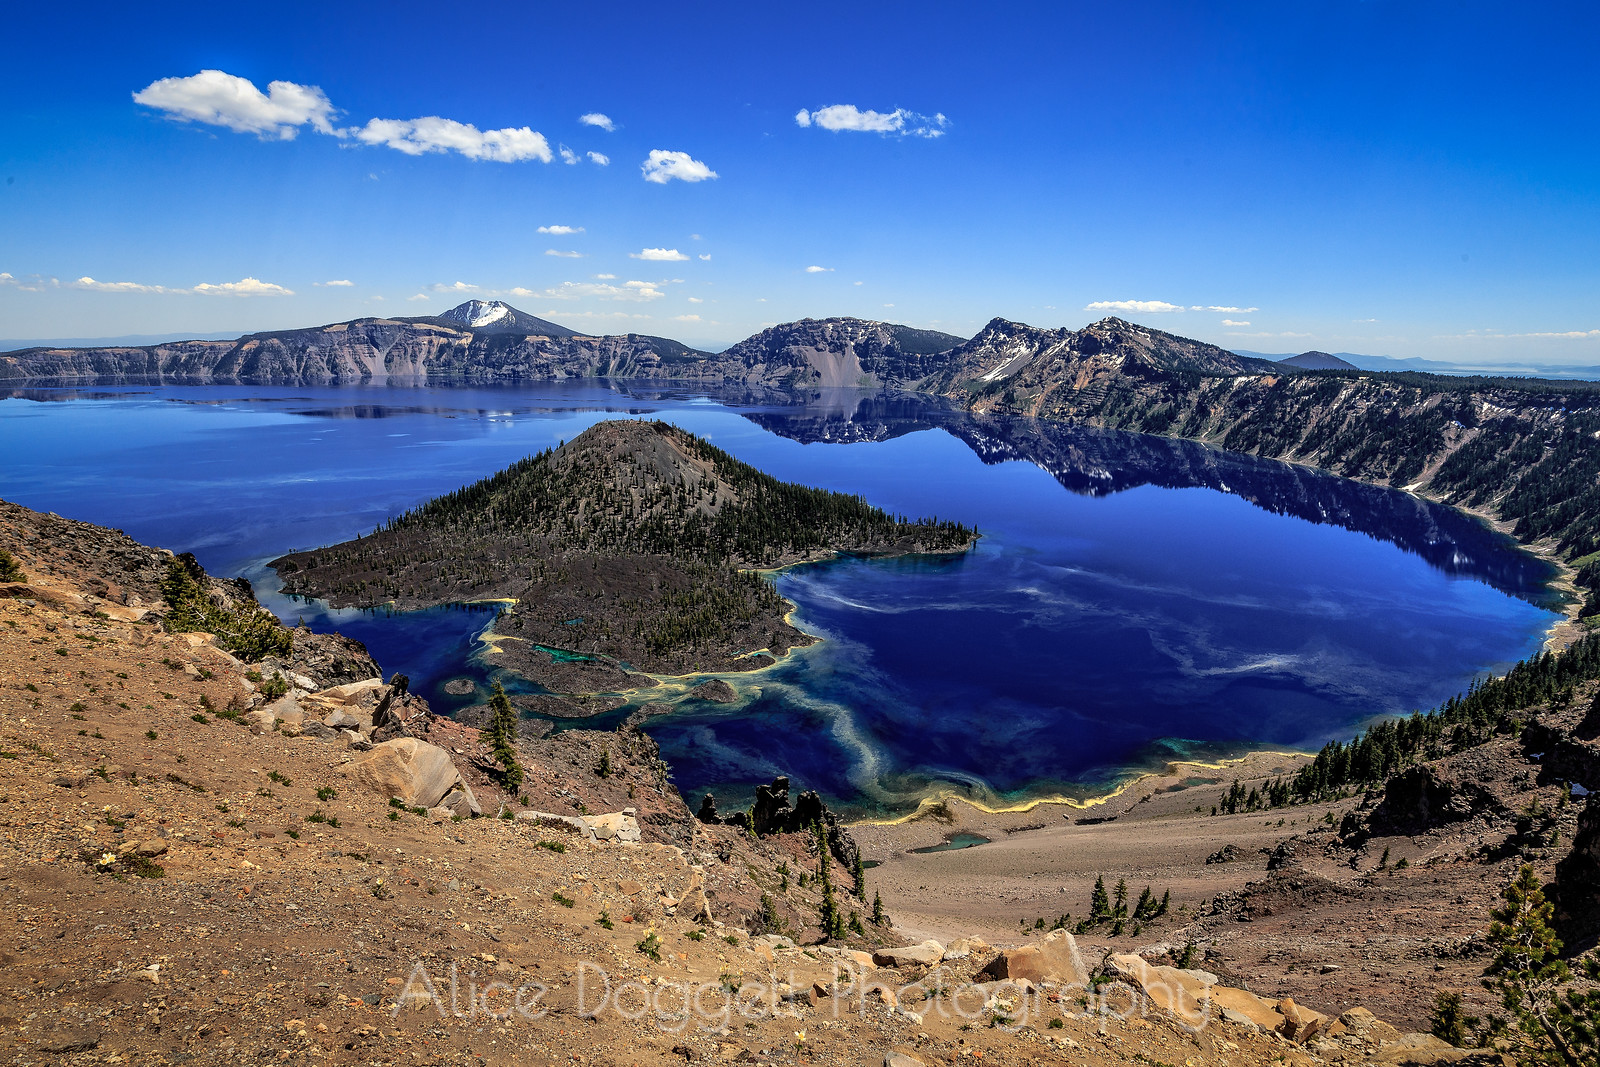 The Beauty of Crater Lake, Crater Lake National Park, Oregon